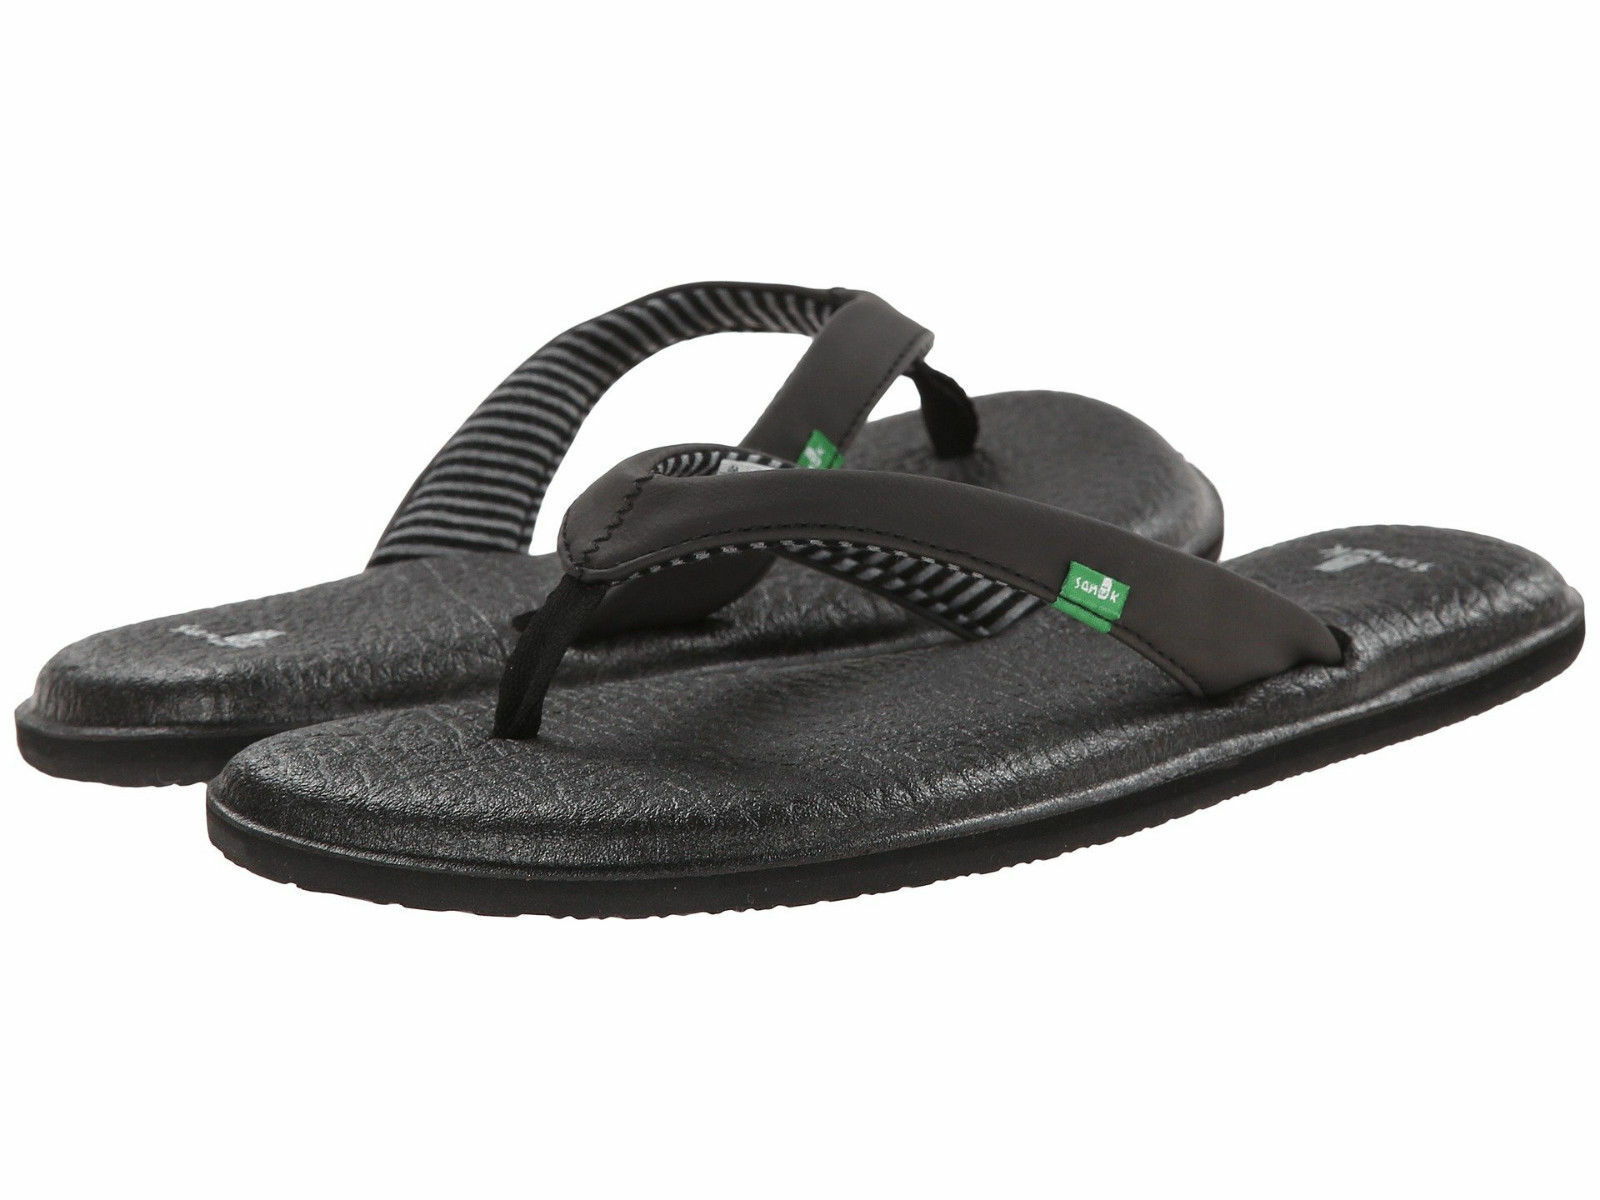 Man/Woman function Women-Sanuk-Yoga-Chakra-Flip-Flop-Sandal-SWS10577-Black-100-Authentic-Brand-New Good design special function Man/Woman Caramel, gentle ec0fa4